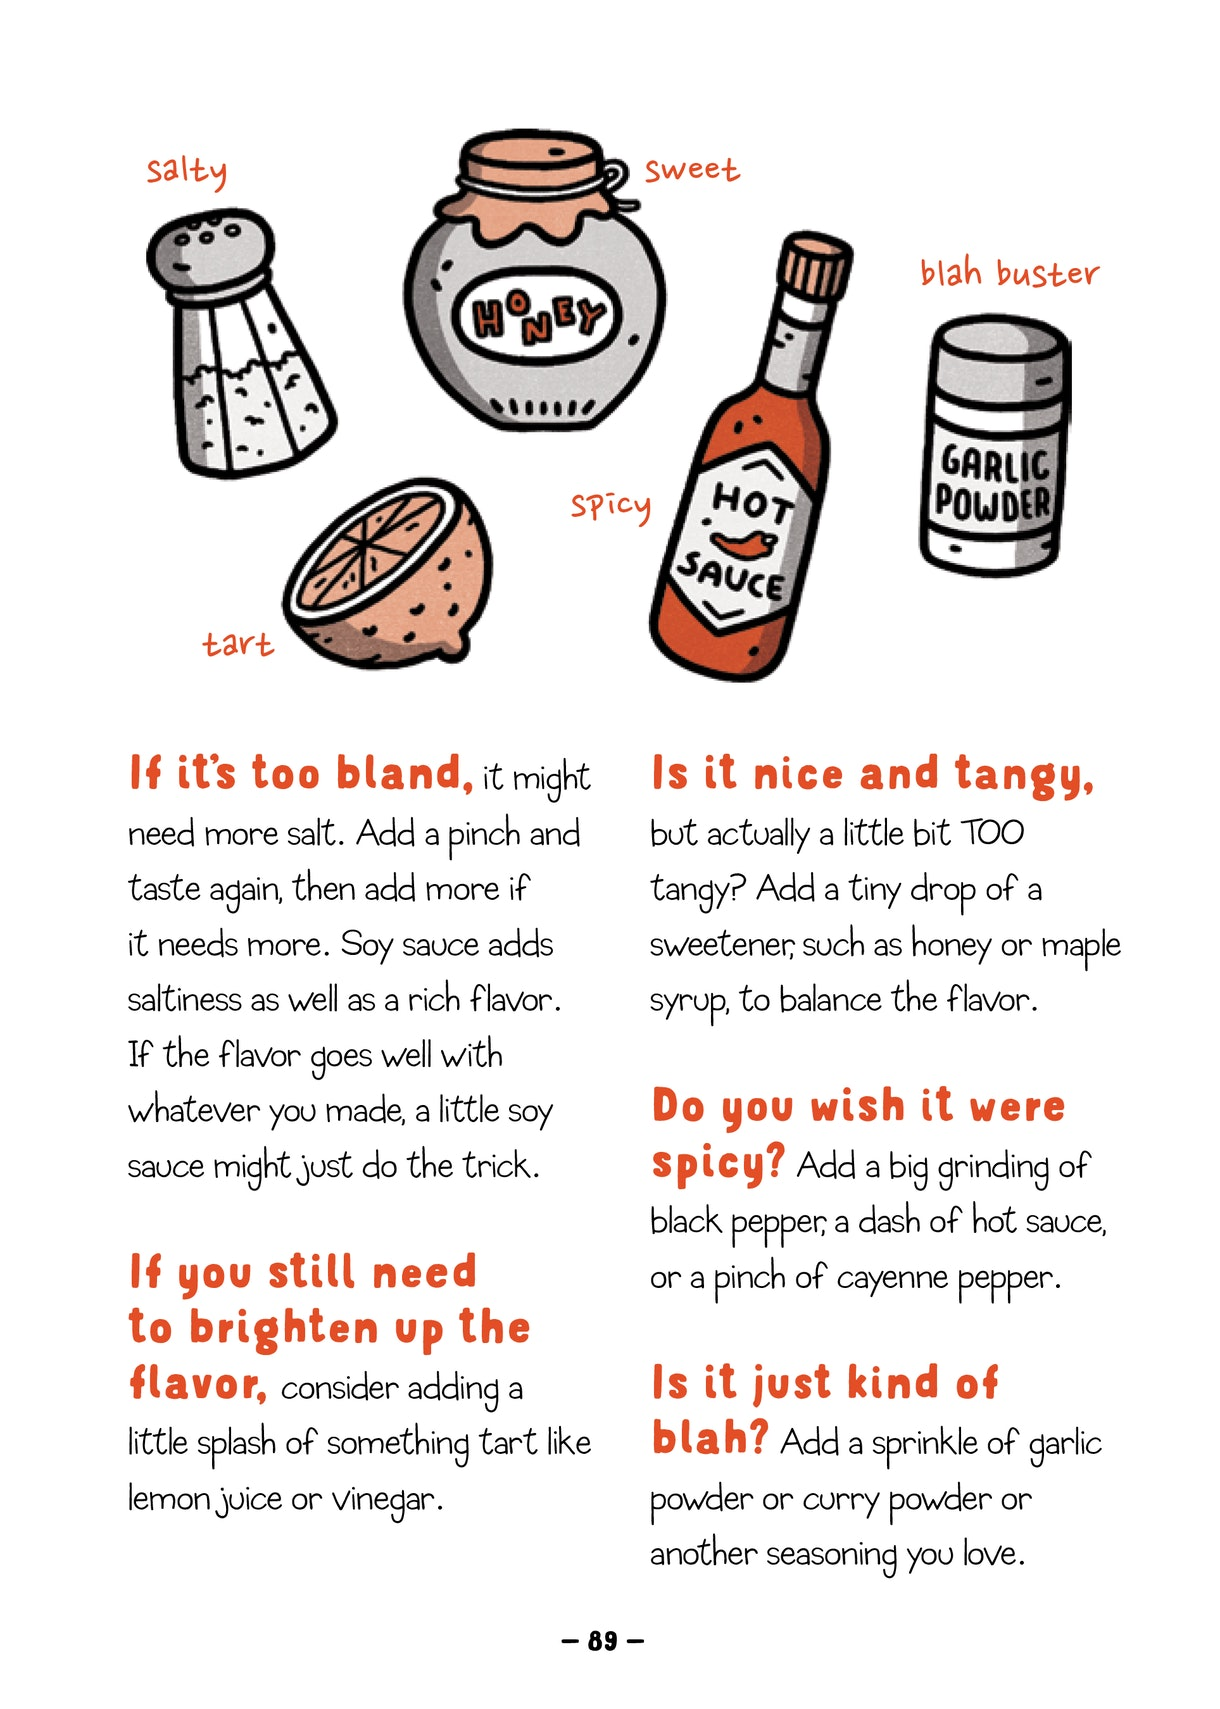 Illustration of ingredients: salty (salt shaker), tart (lemon). sweet (honey jar), spicy (bottle of hot sauce), blah buster (garlic powder). Text: If it's too bland, it might need more salt. Add a pinch then taste again, then add more if it needs more. Soy sauce adds saltiness as well as a rich flavor. If the flavor goes well with whatever you made, soy sauce just do the trick. Is it nice and tangy, but actually a little too tangy? Add a tiny drop of sweetener, such as honey or maple syrup, to balance the flavor. Do you wish it were spicy? Add a big grinding of black pepper, a dash of hot sauce, or a pinch of cayenne pepper. If you still need to brighten up the flavor, consider adding a splash of something tart like lemon juice or vinegar. Is it just kind of blah? Add a sprinkle of garlic powder or curry powder or another seasoning you love.